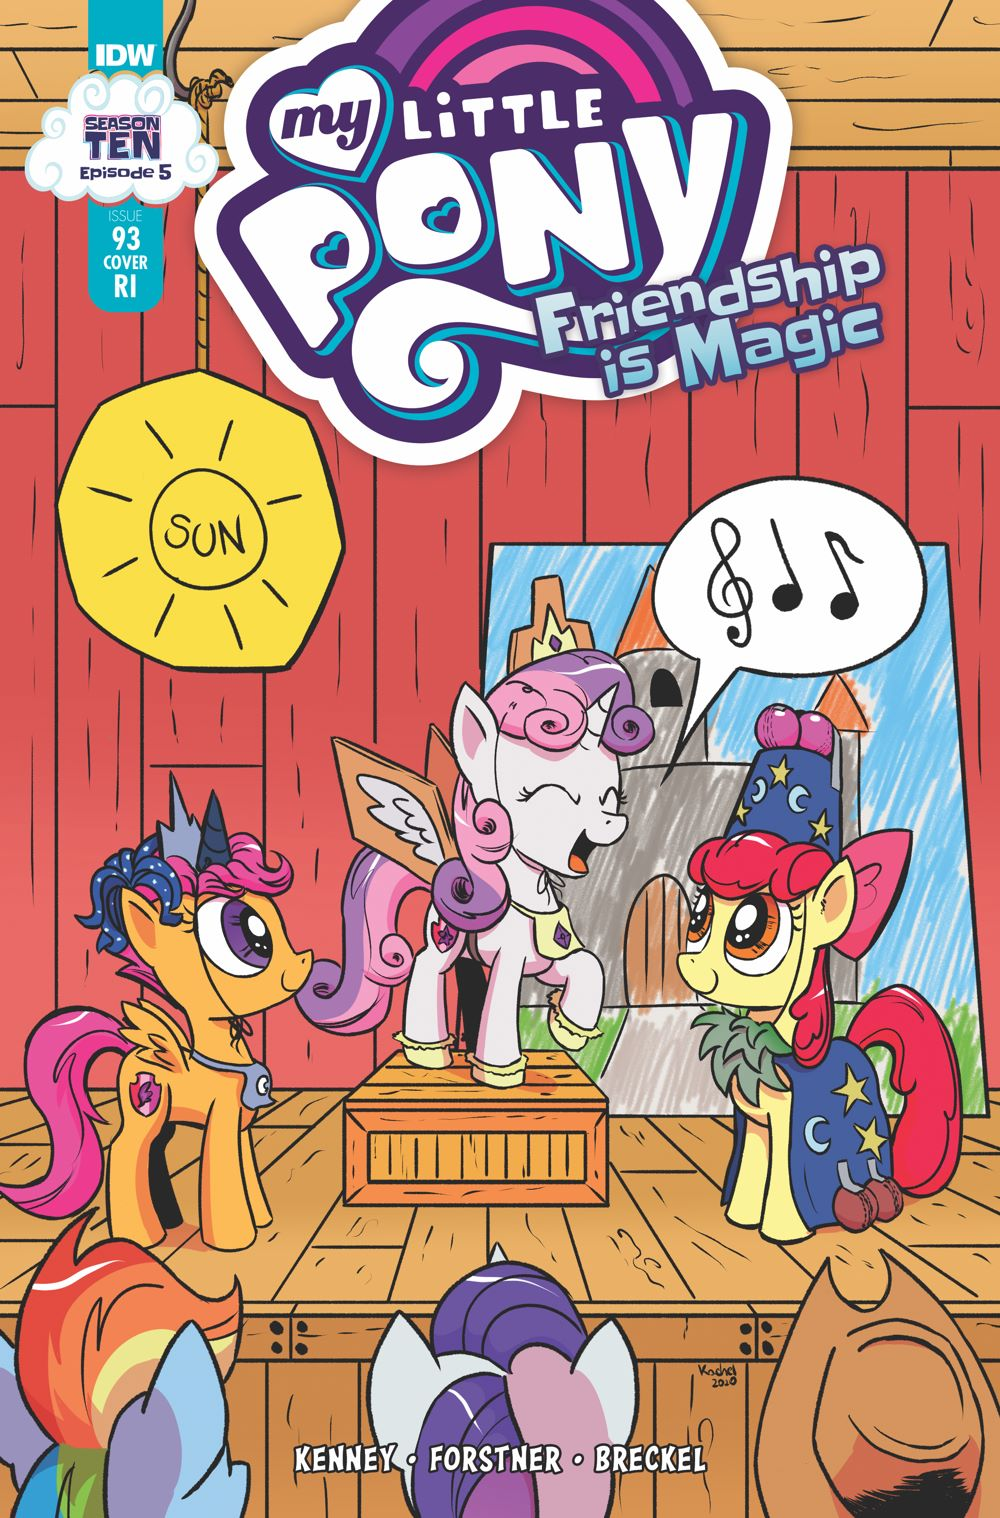 MLP93_05-coverRI ComicList: IDW Publishing New Releases for 01/06/2021